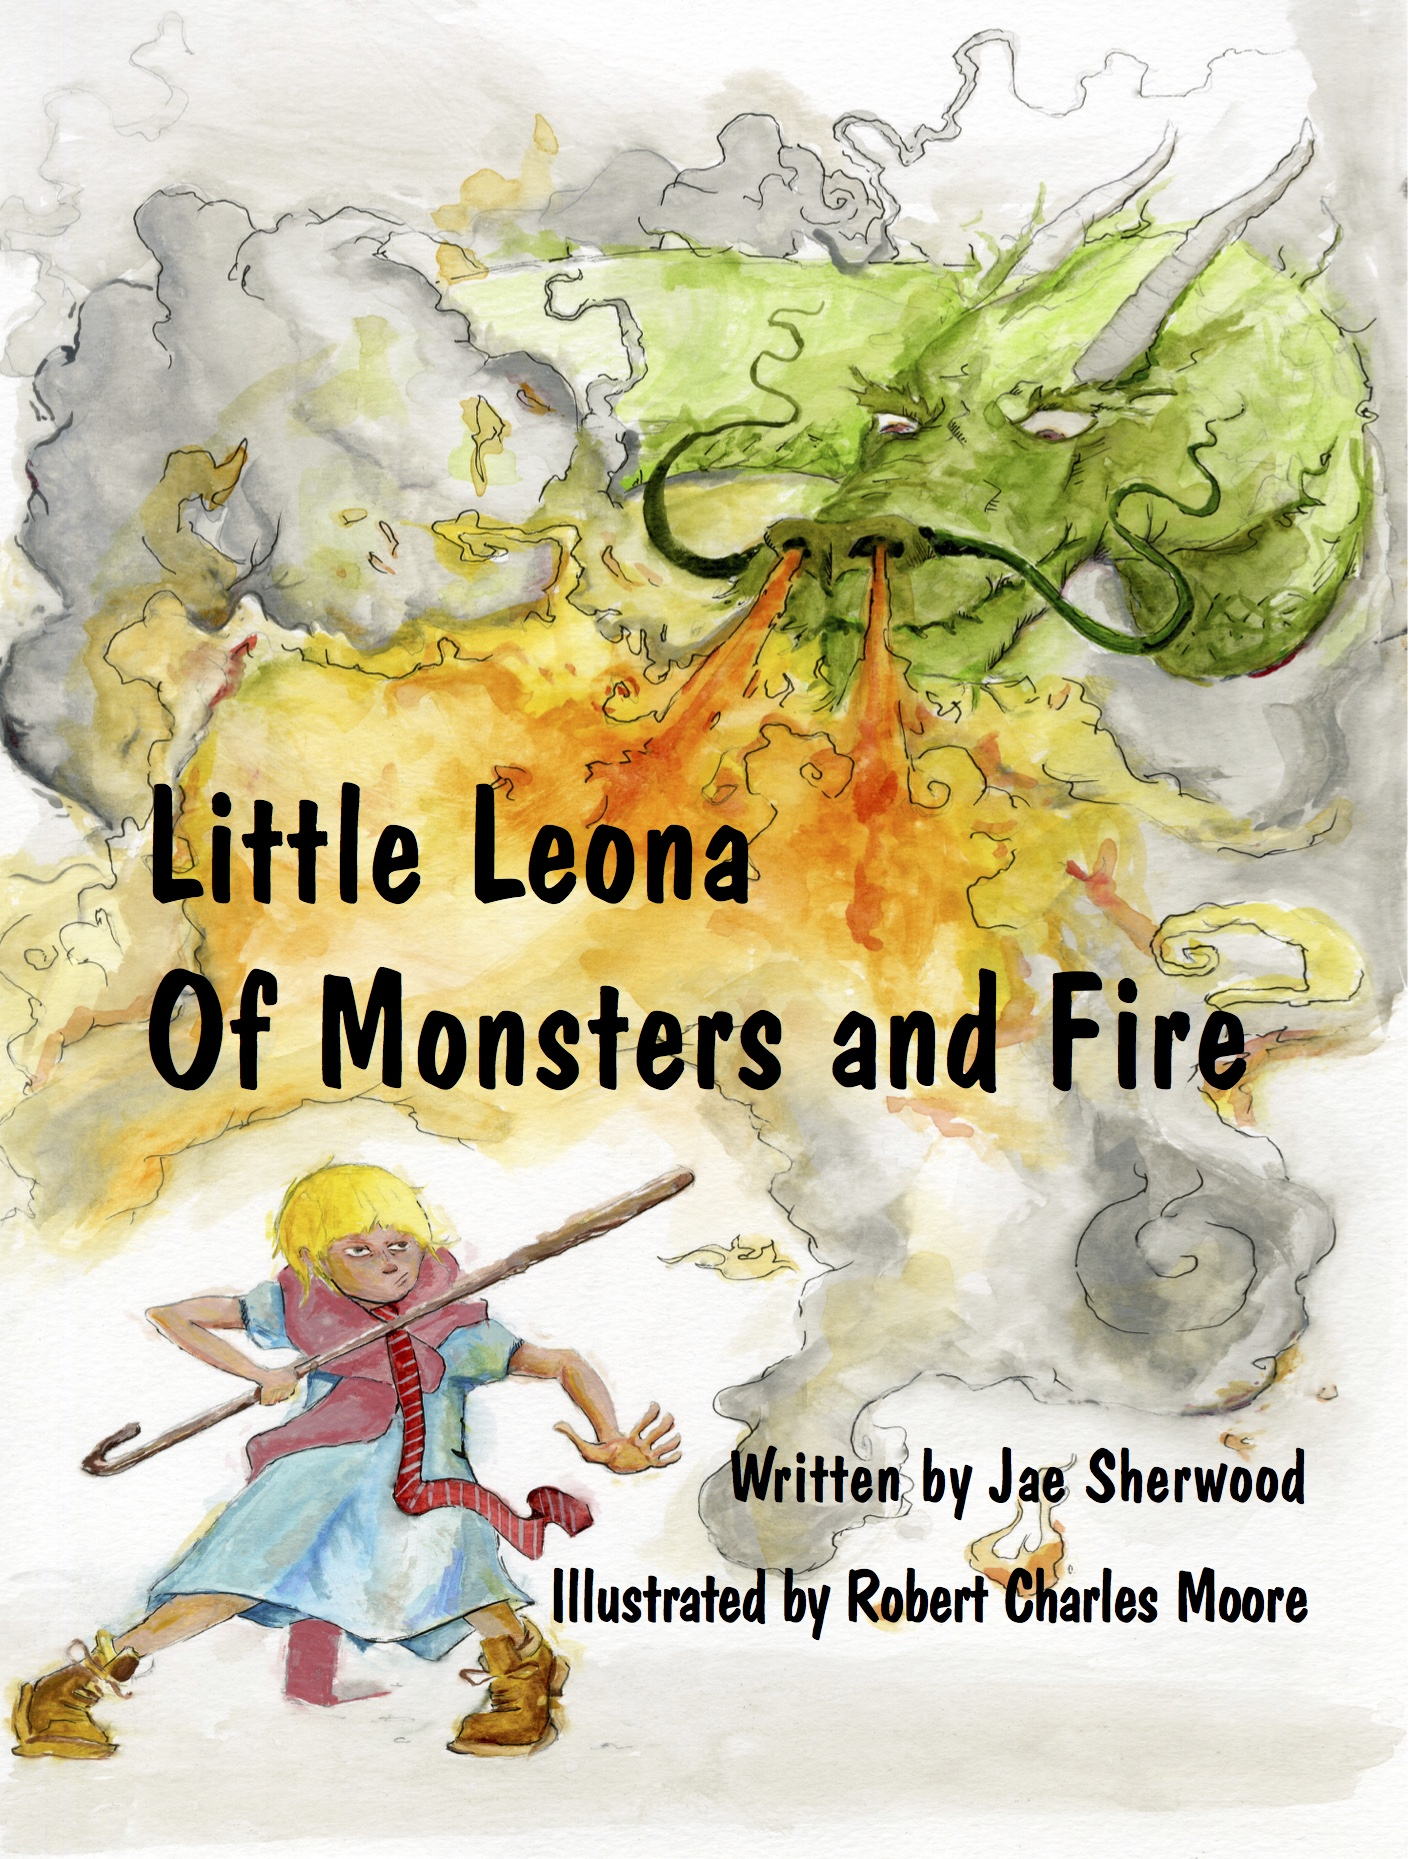 Little Leona Of Monsters and Fire.jpg